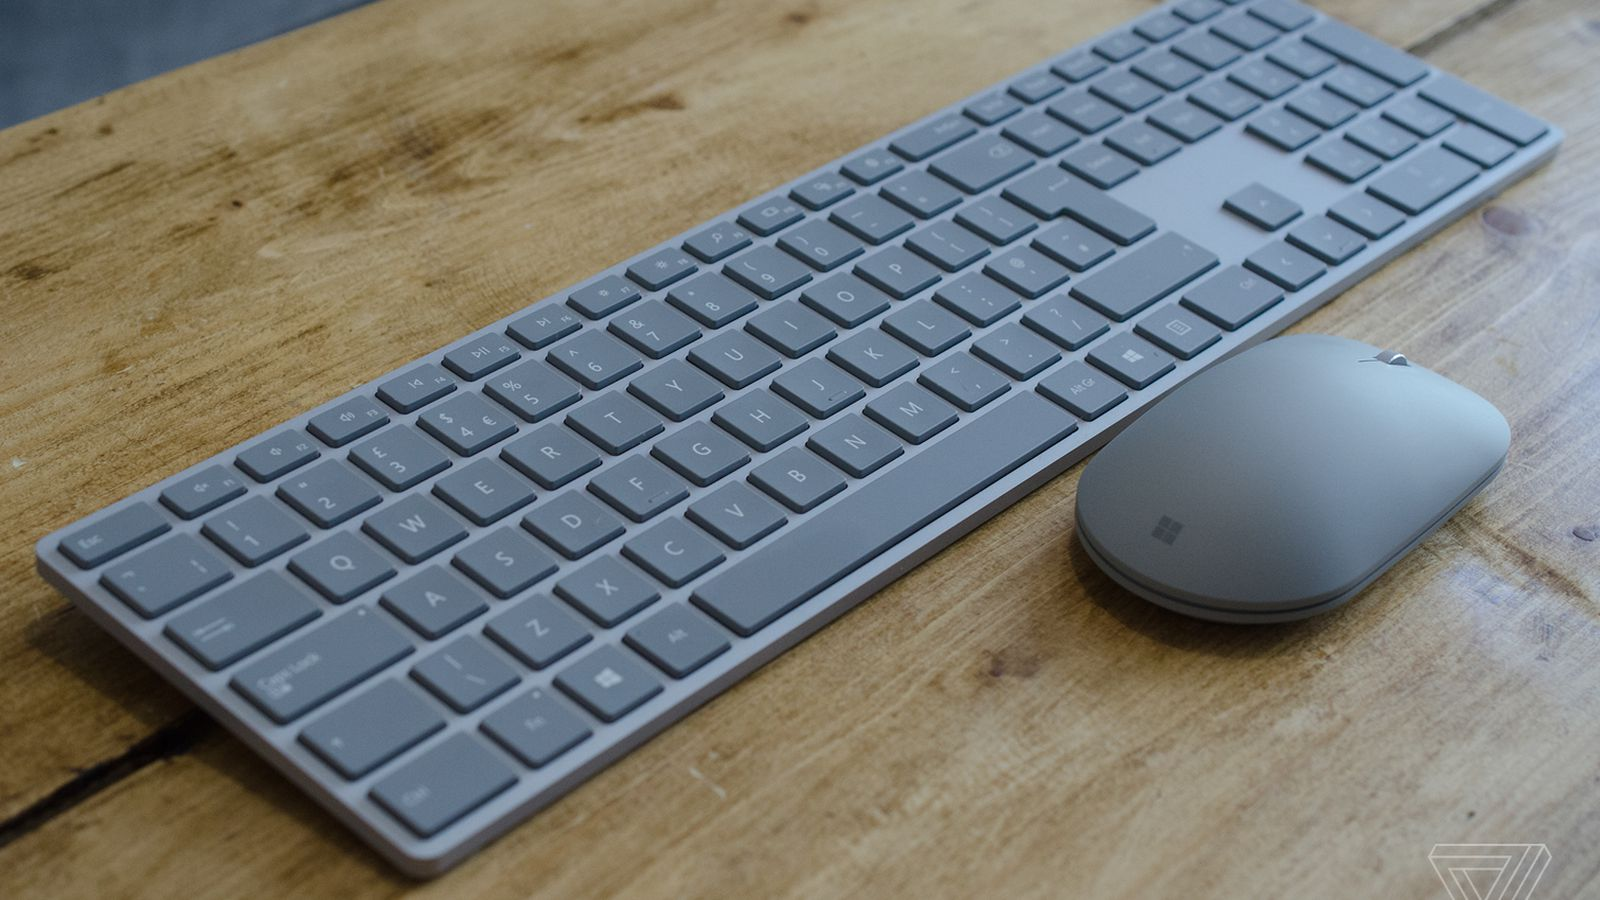 microsoft finally made my favorite keyboard and mouse the verge. Black Bedroom Furniture Sets. Home Design Ideas